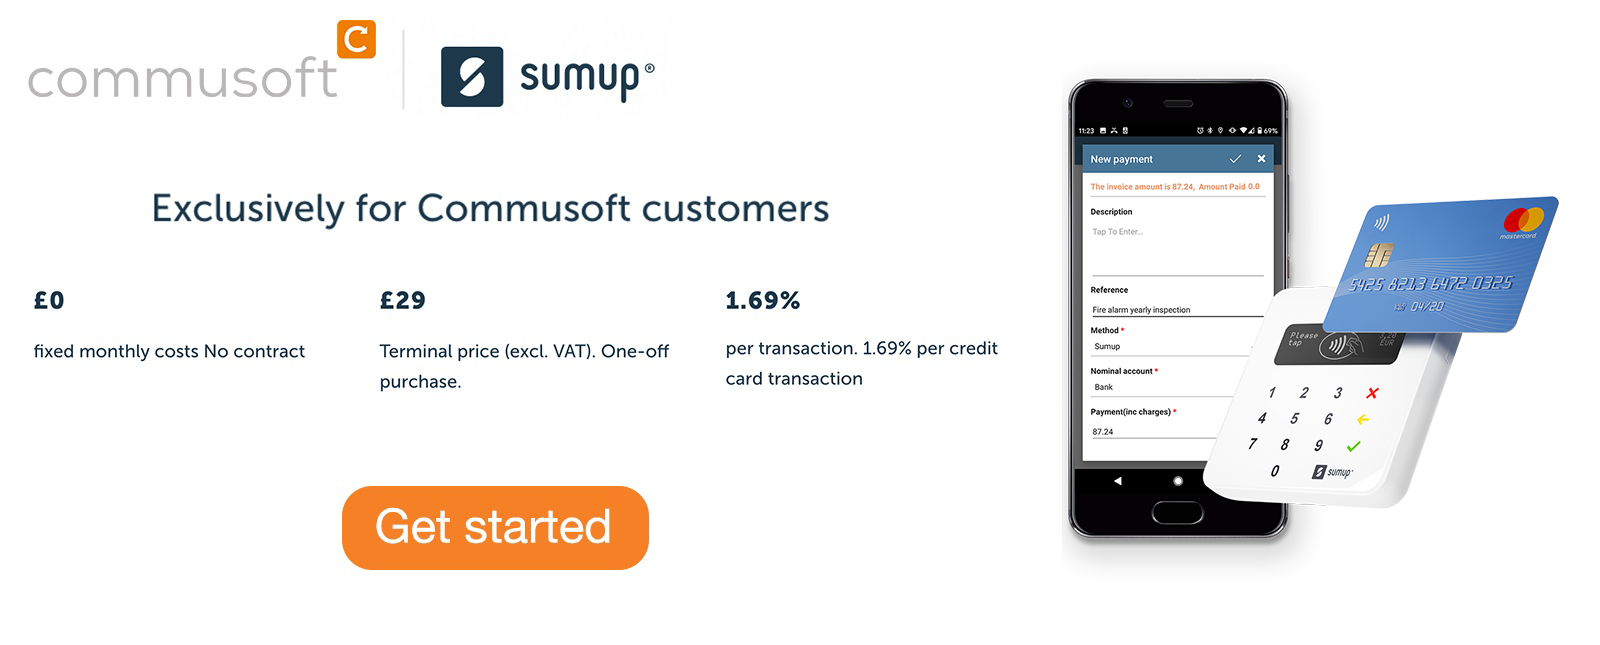 SumUp commusoft promotion